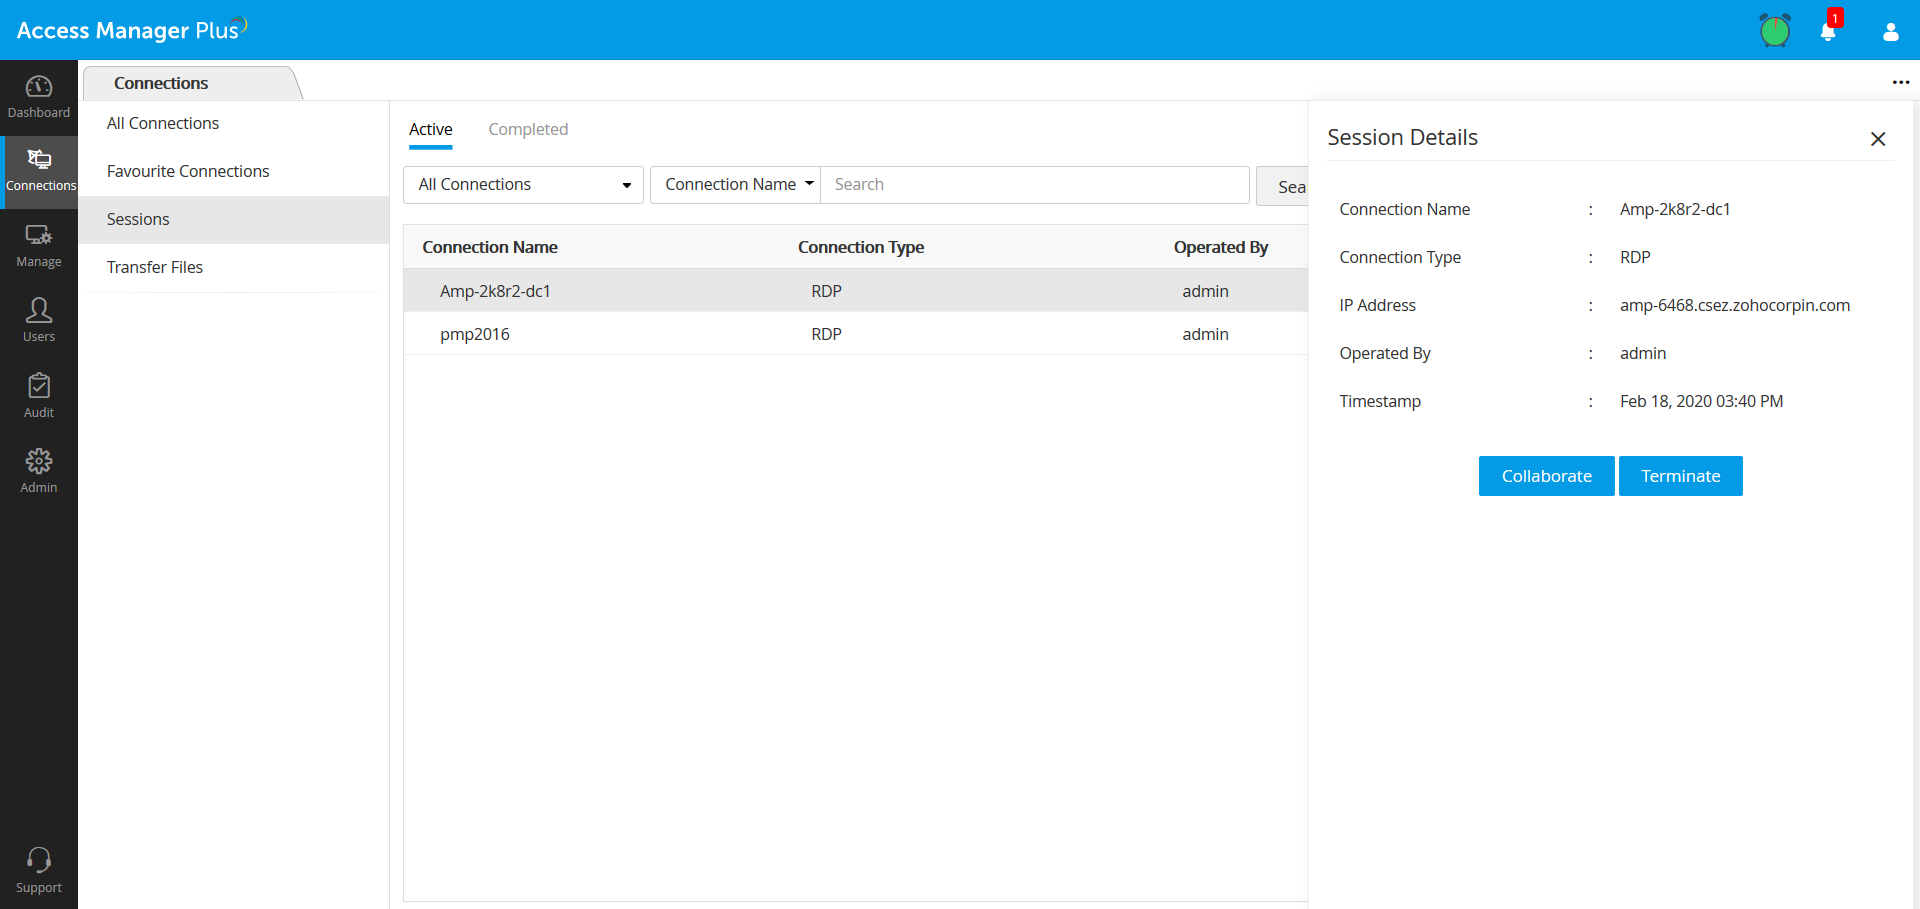 Real-time session shadowing collaboration in Access Manager Plus